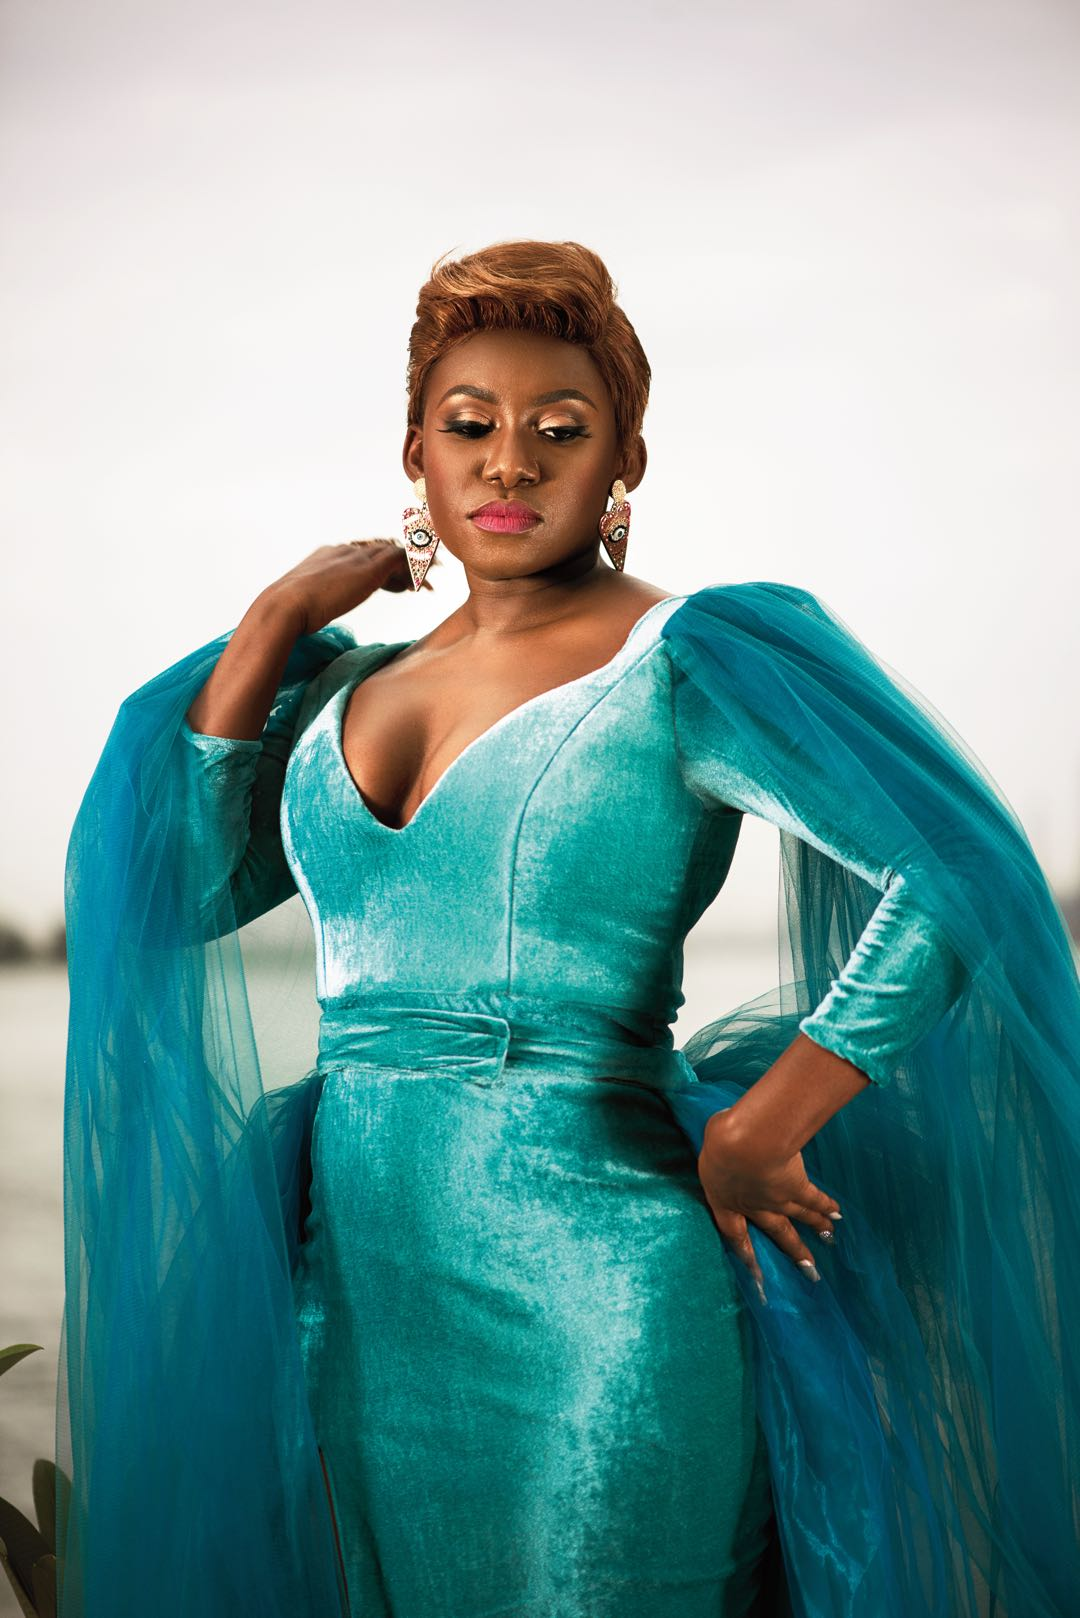 Niniola talks Leaving Teaching for Music & Where she Gets Inspiration From